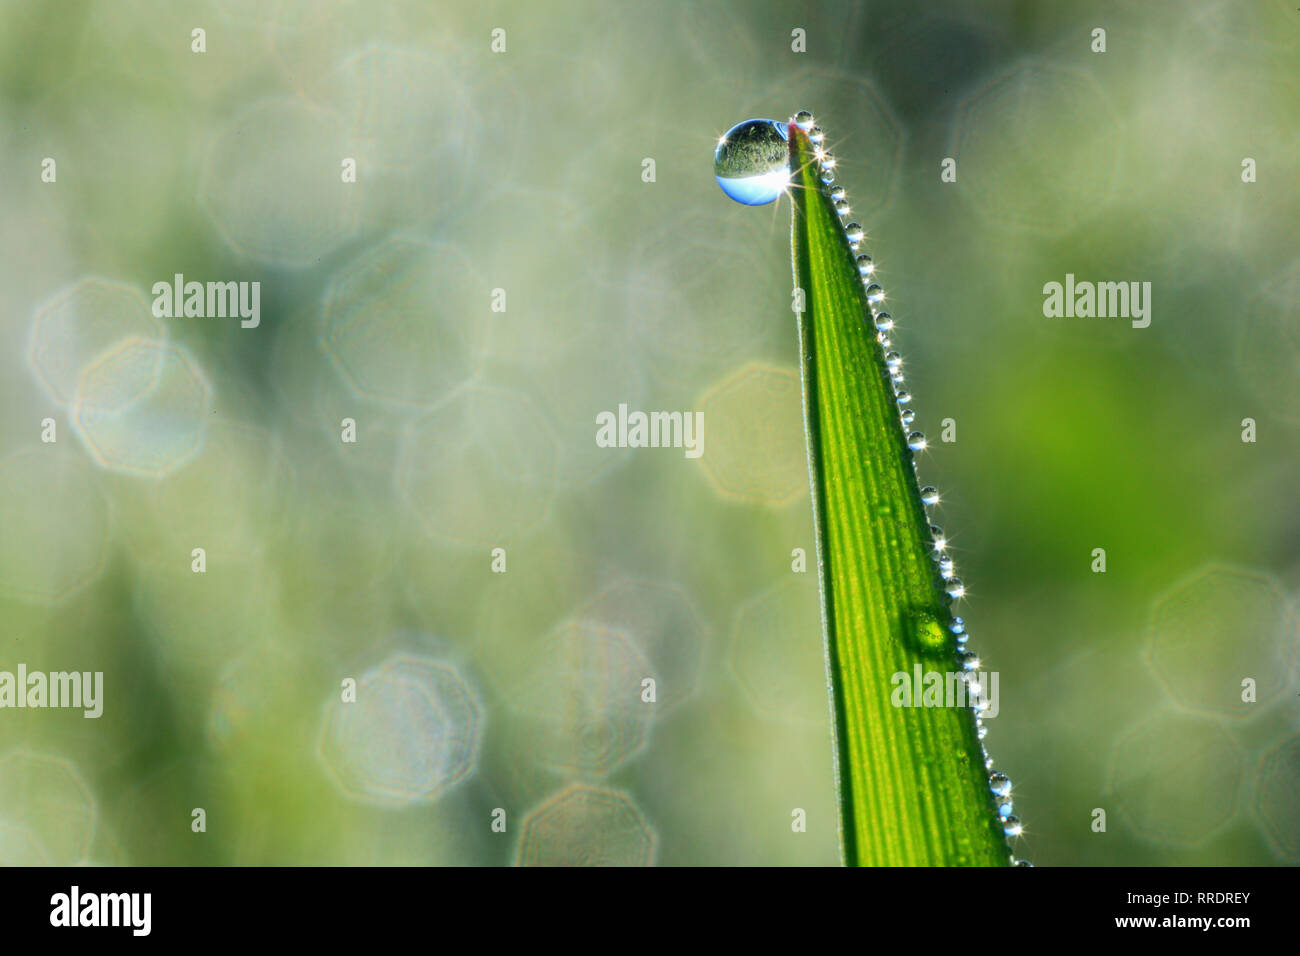 botany, blade of grass with dew drop, Switzerland, Additional-Rights-Clearance-Info-Not-Available - Stock Image